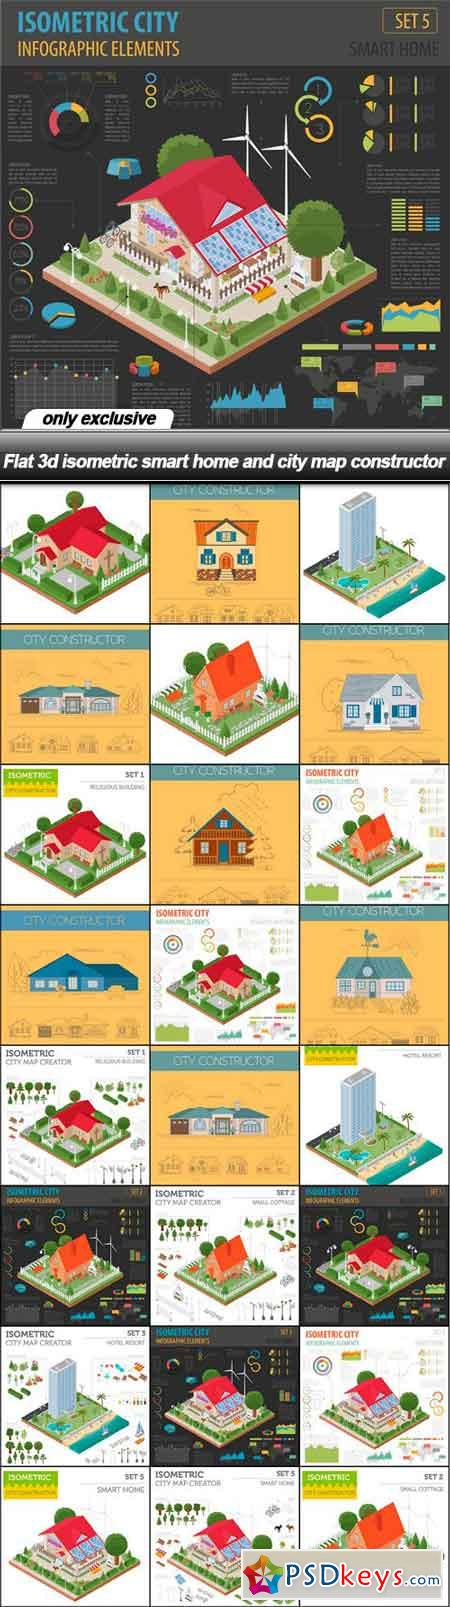 Flat 3d isometric smart home and city map constructor - 23 EPS